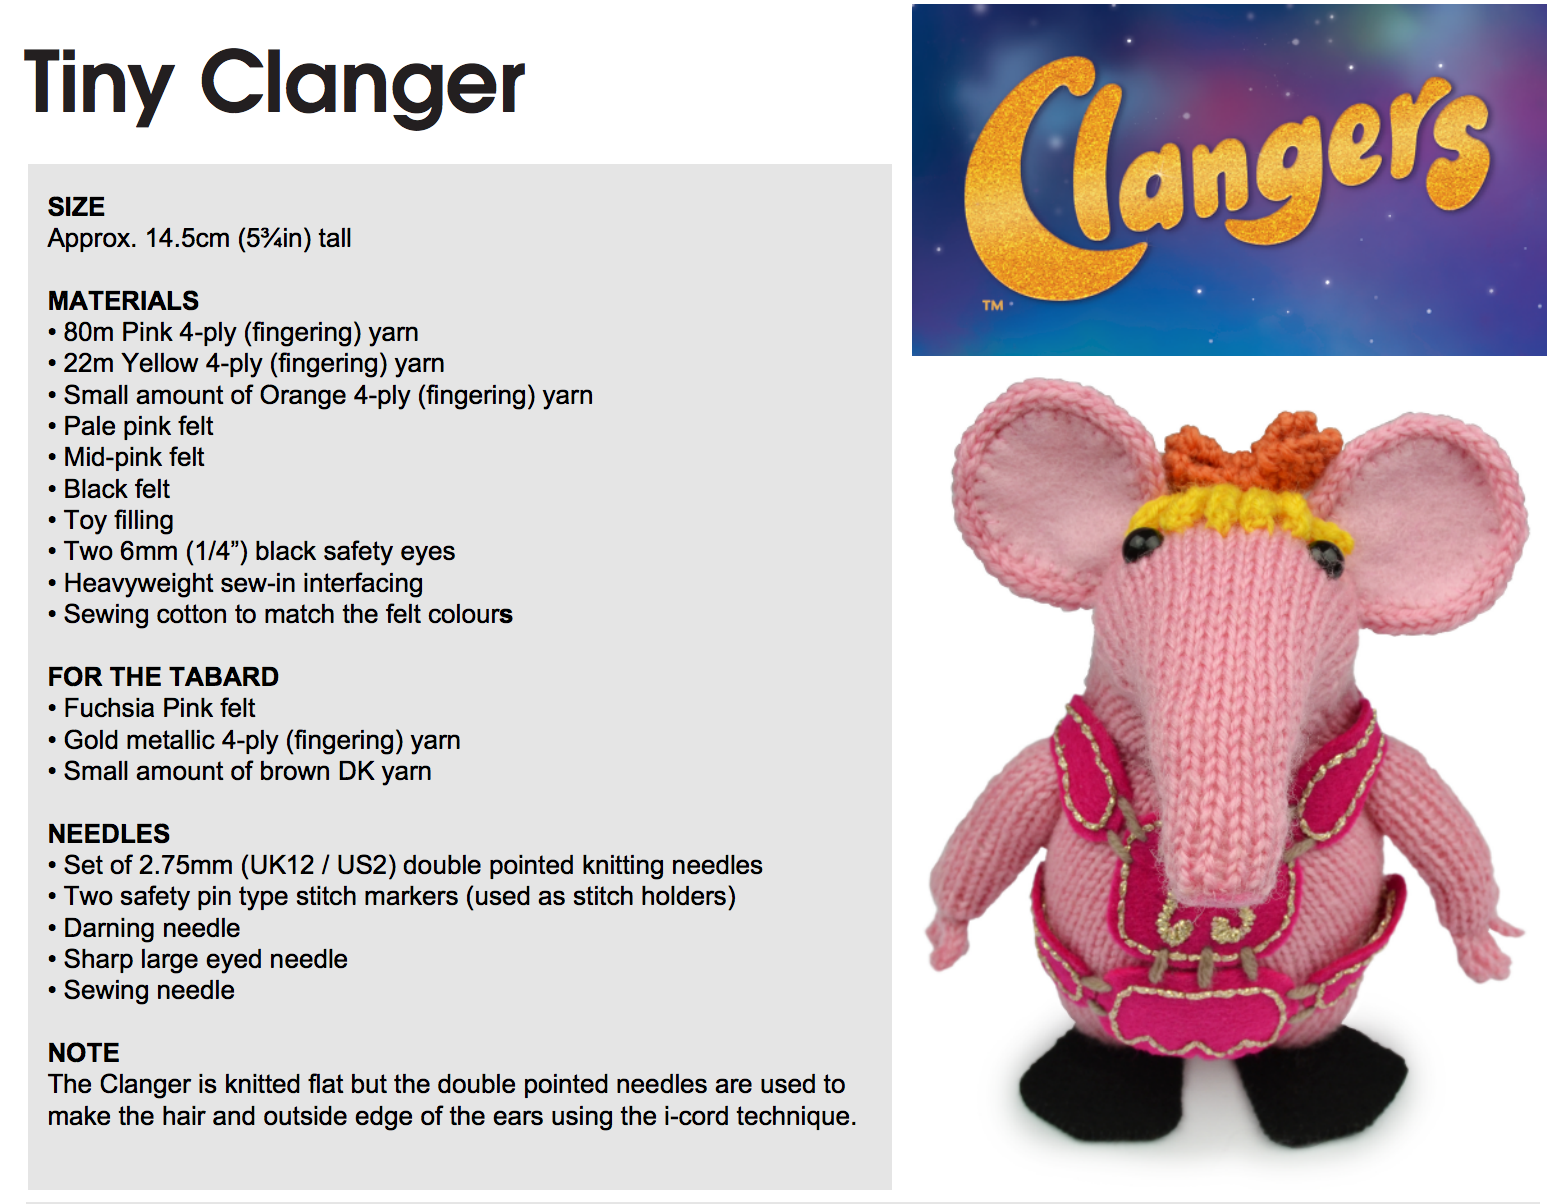 Knit your own Tiny Clanger! #clangers #knitting | Clangery Crafts ...